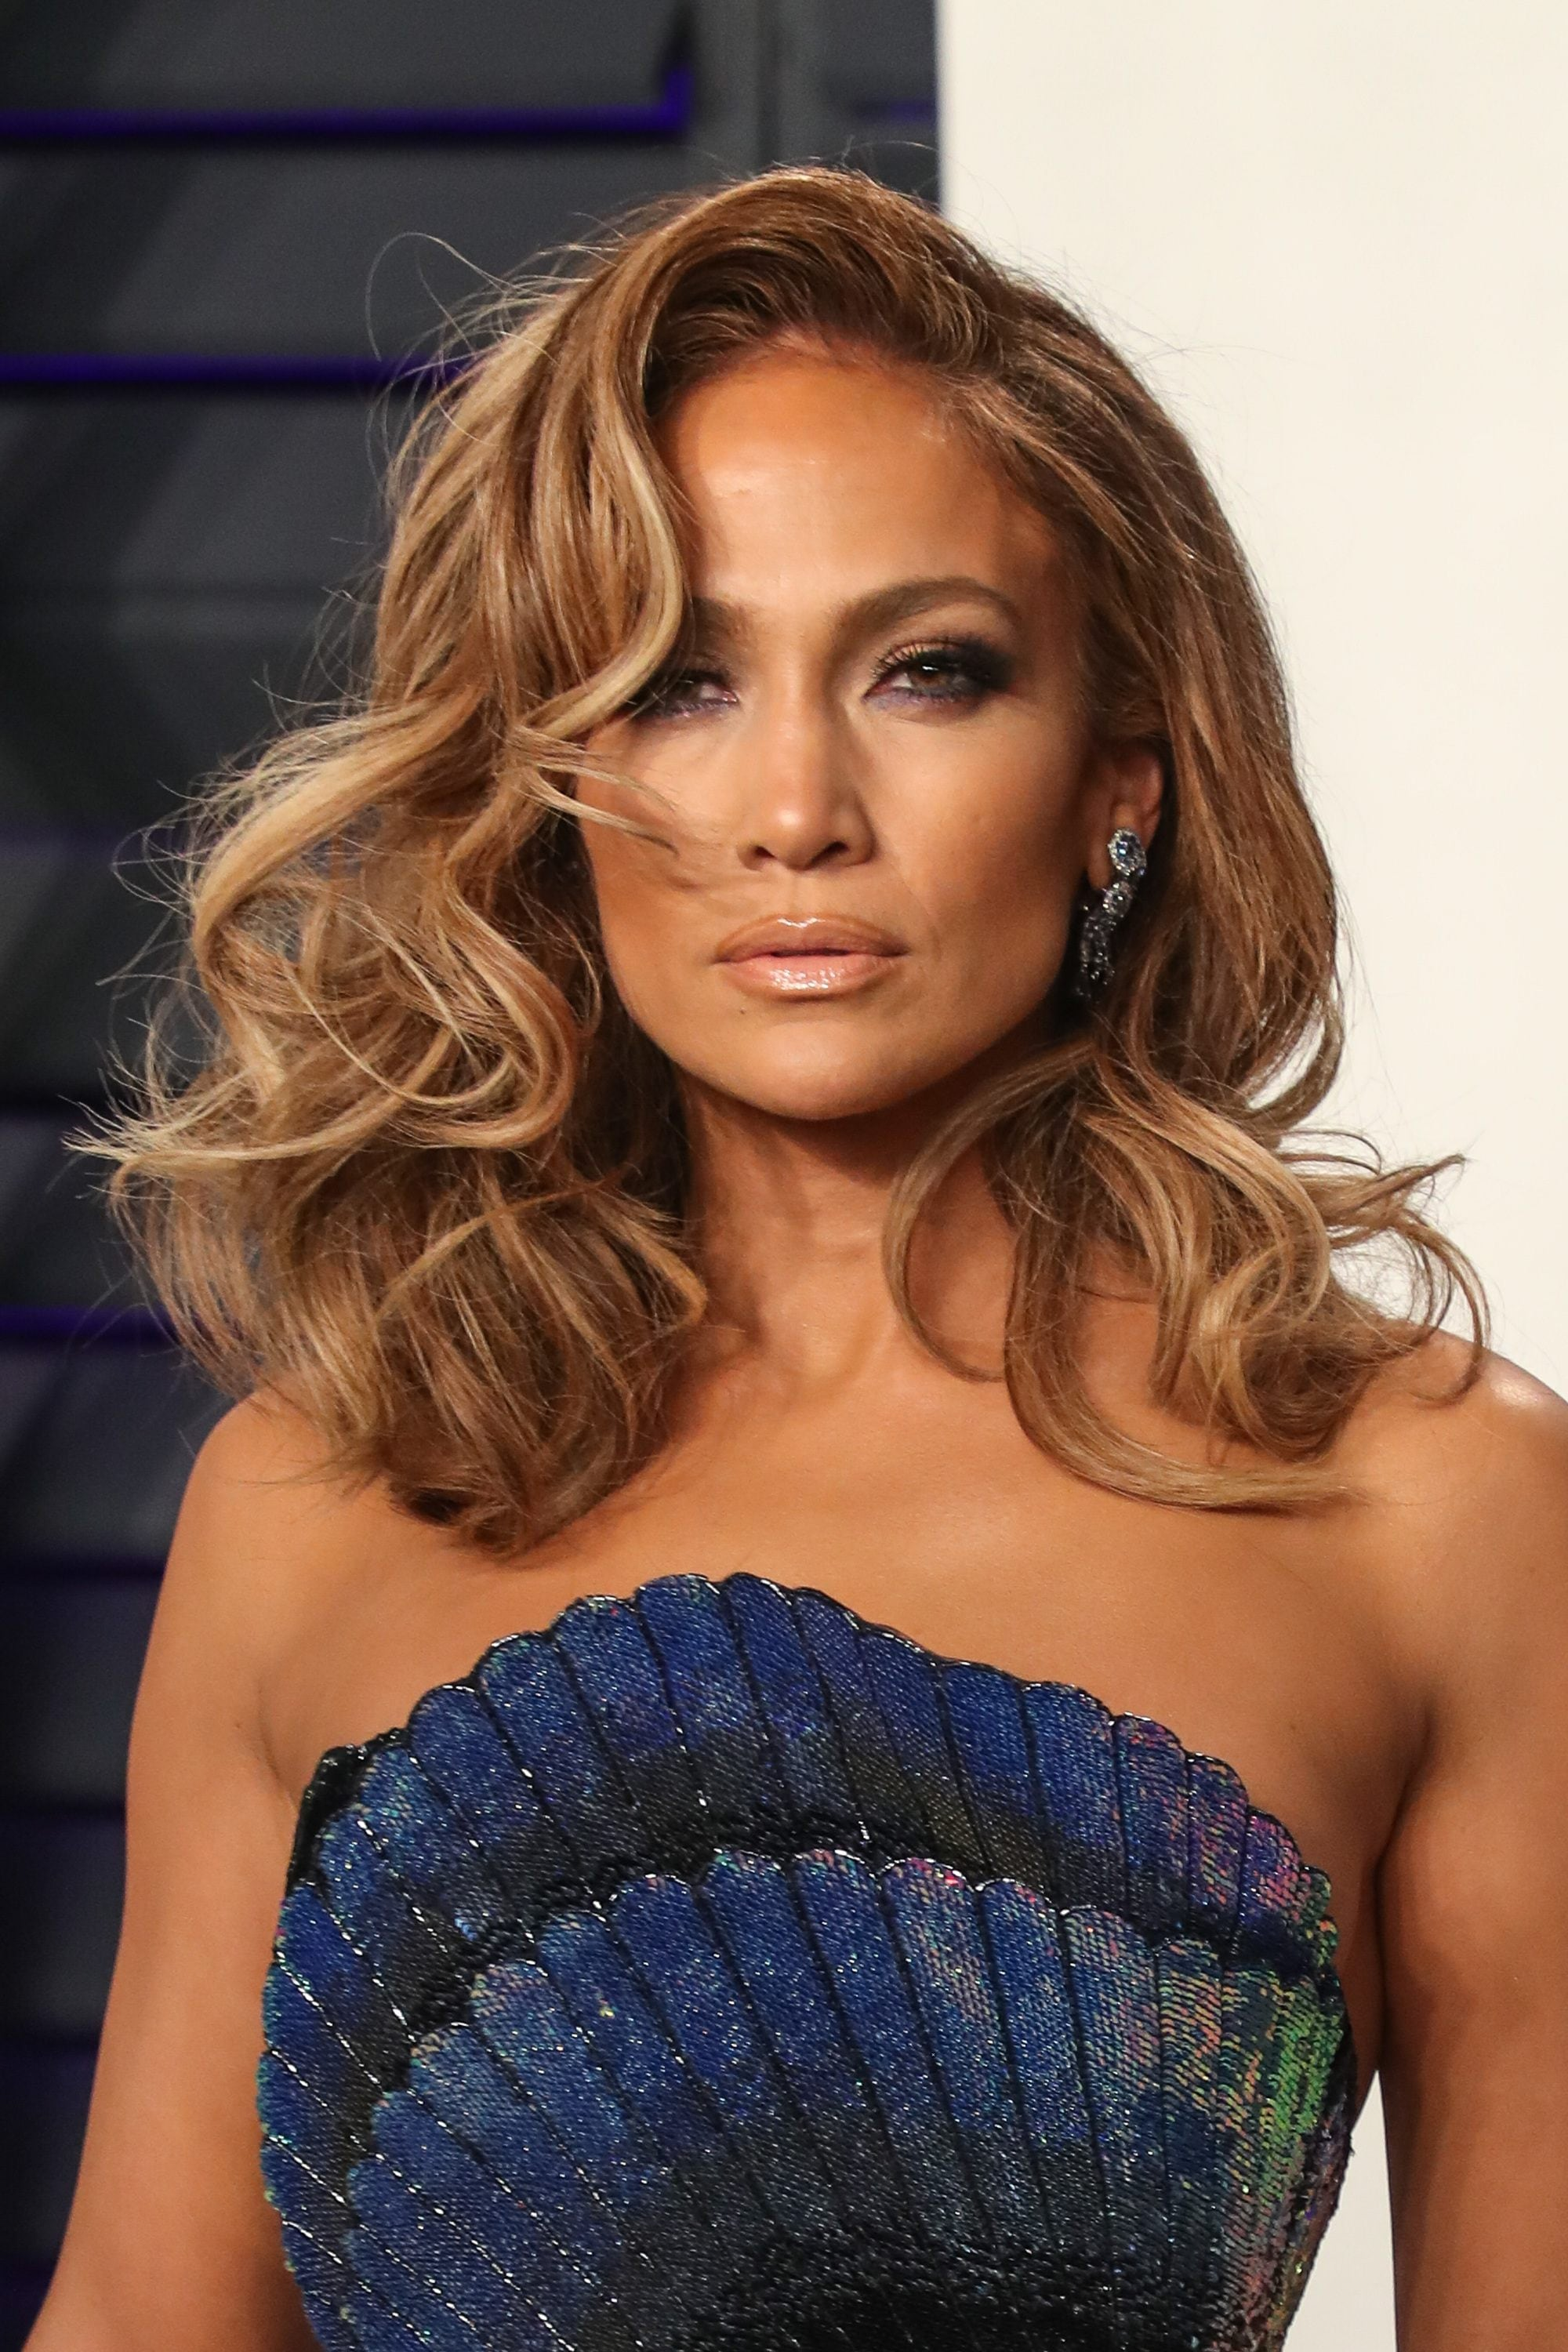 Highlights and lowlights: Jennifer Lopez with medium length curly hair with side fringe.